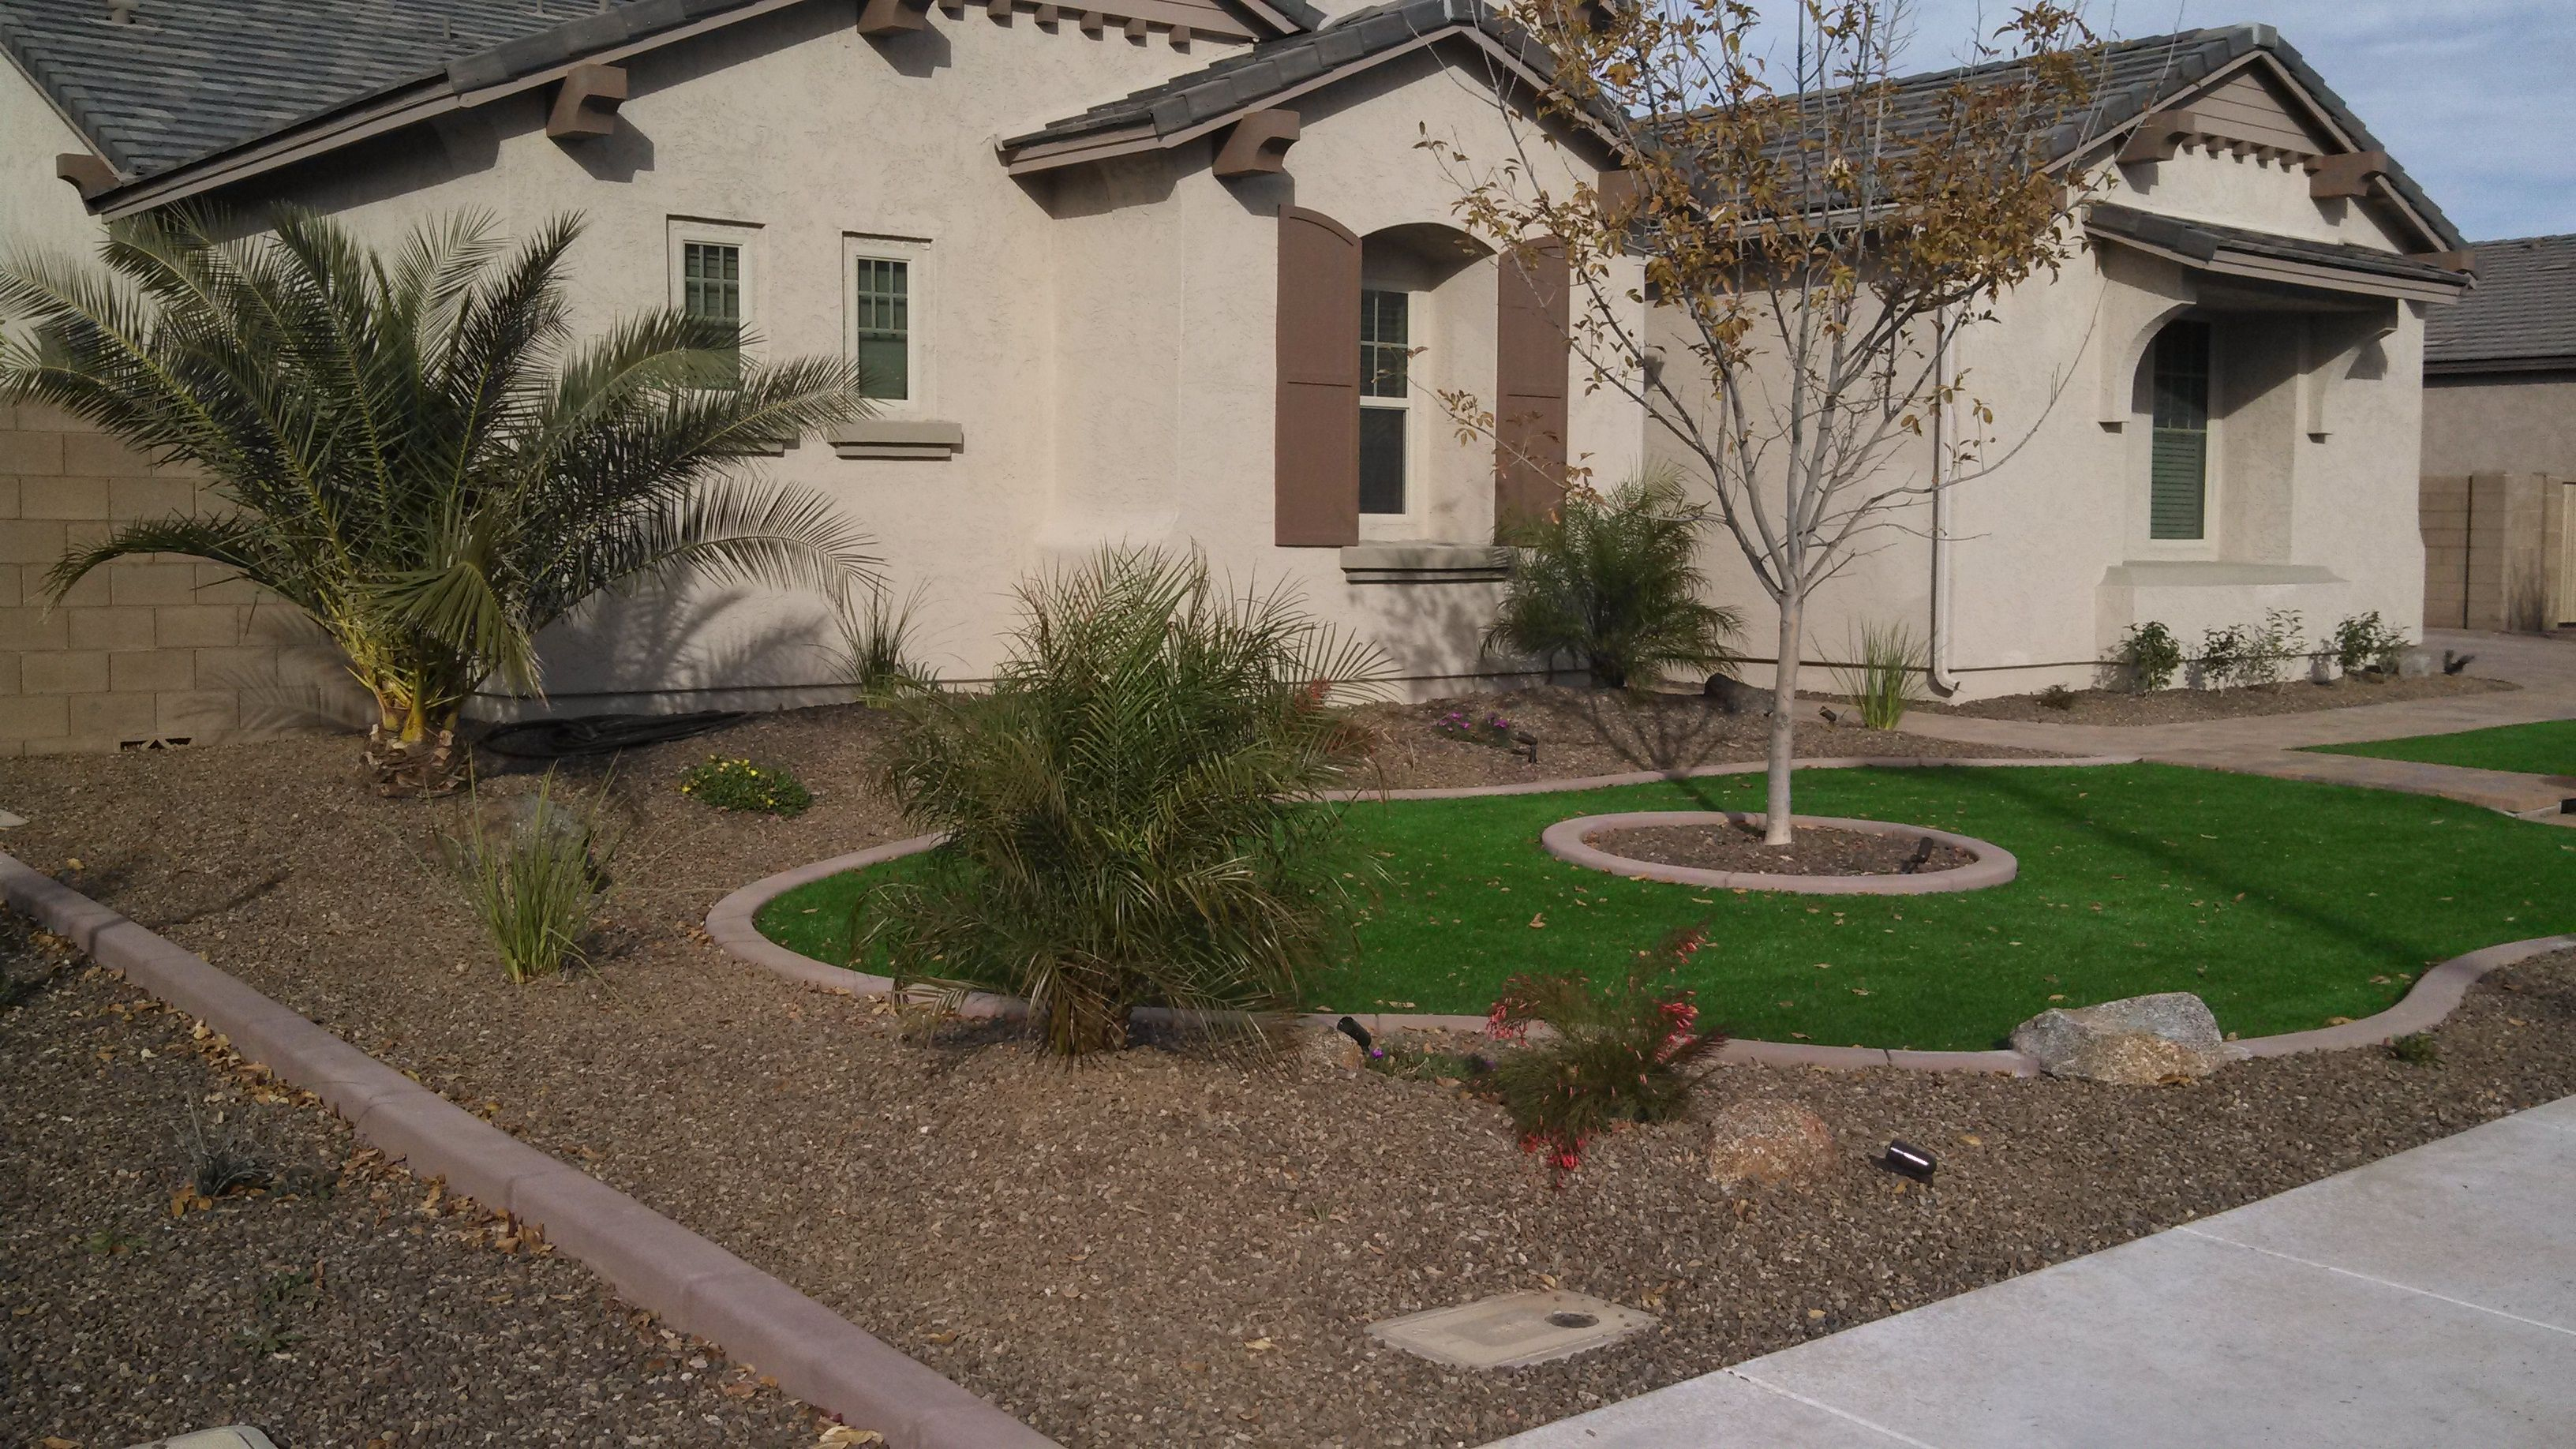 Desert Landscaping Ideas With Pavers And Artificial Turf Synthetic throughout 12 Some of the Coolest Ways How to Craft Backyard Landscaping Ideas With Pavers